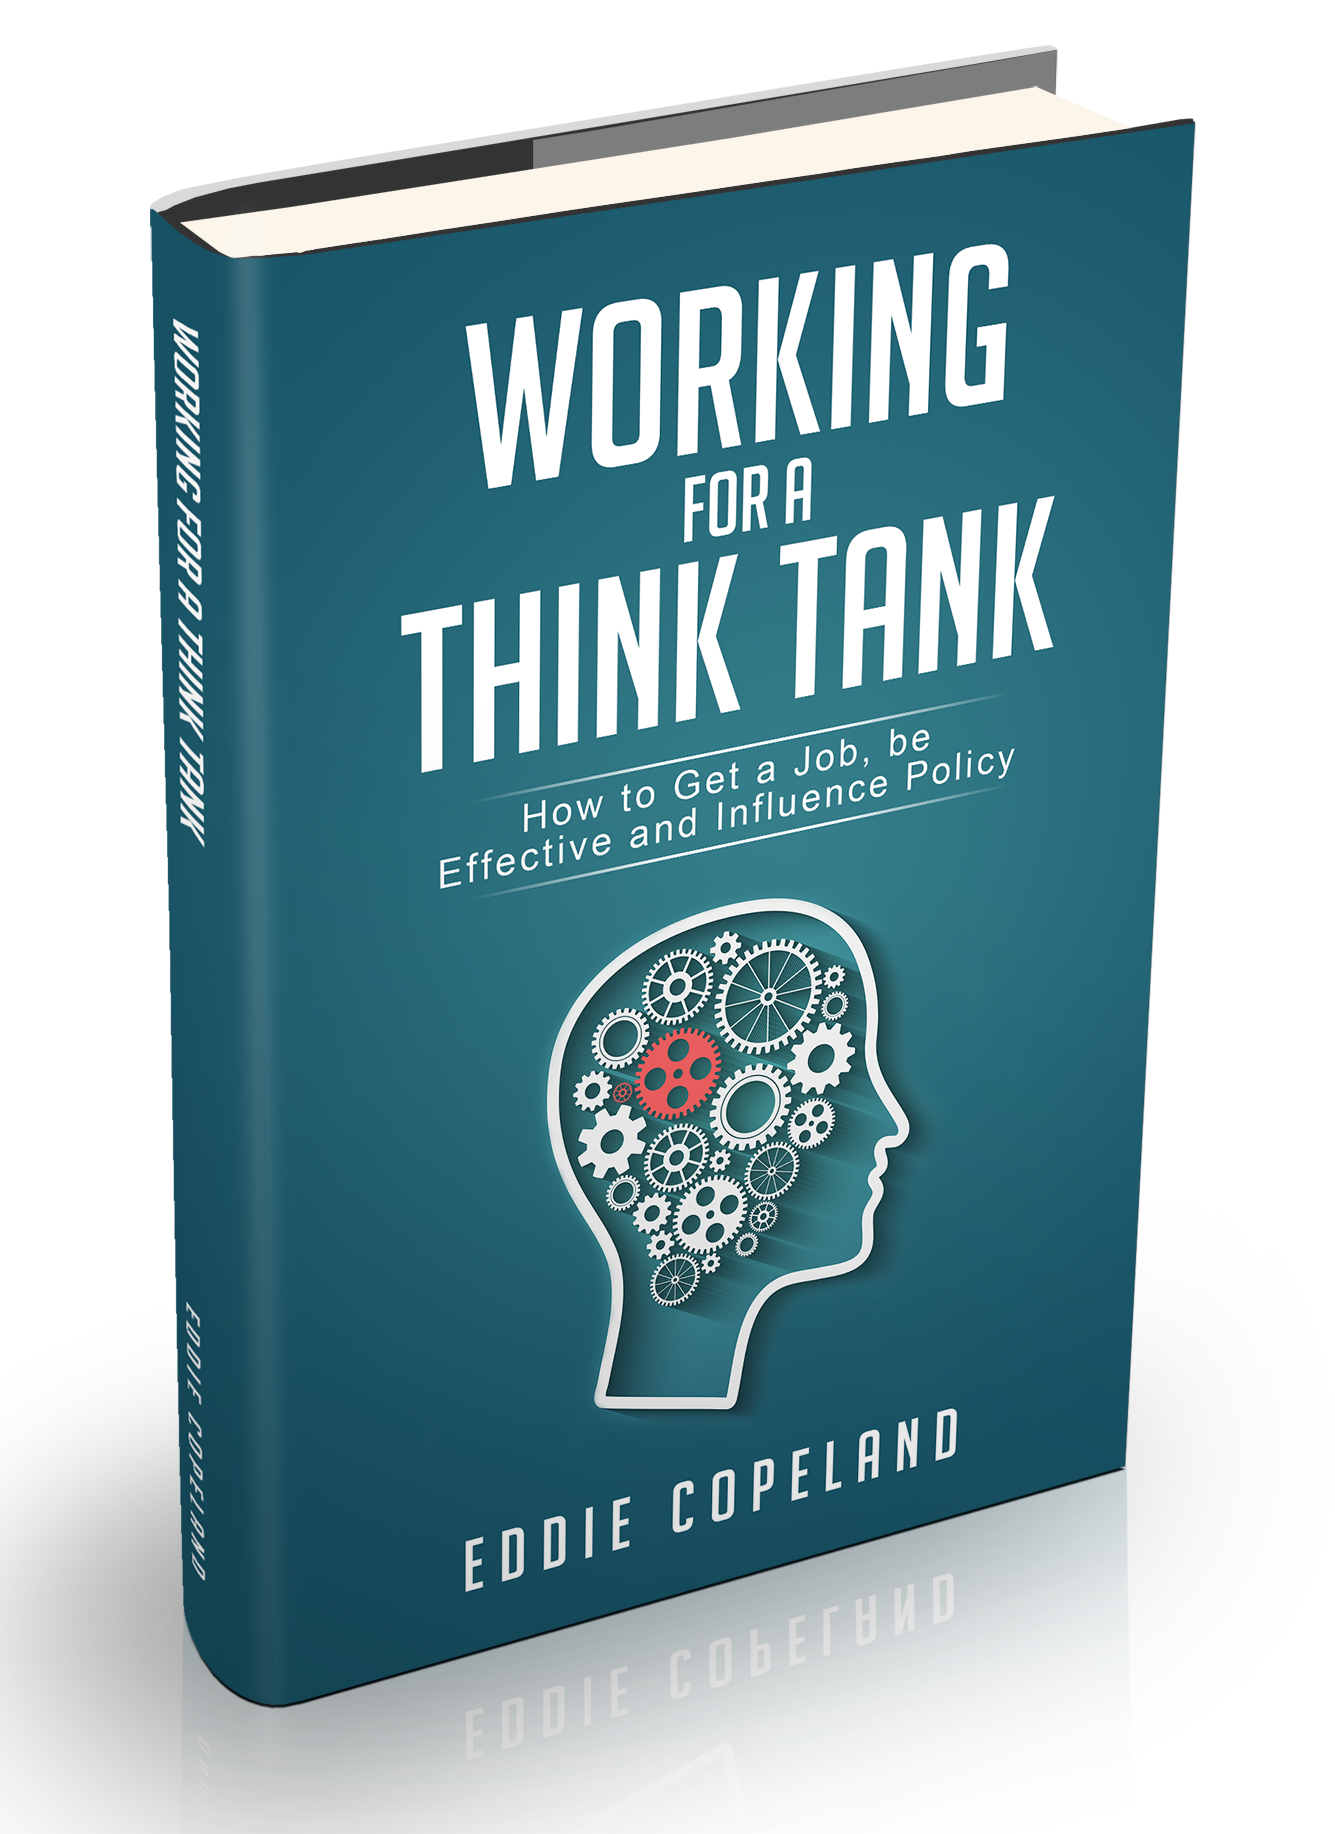 Working for a think tank - book cover